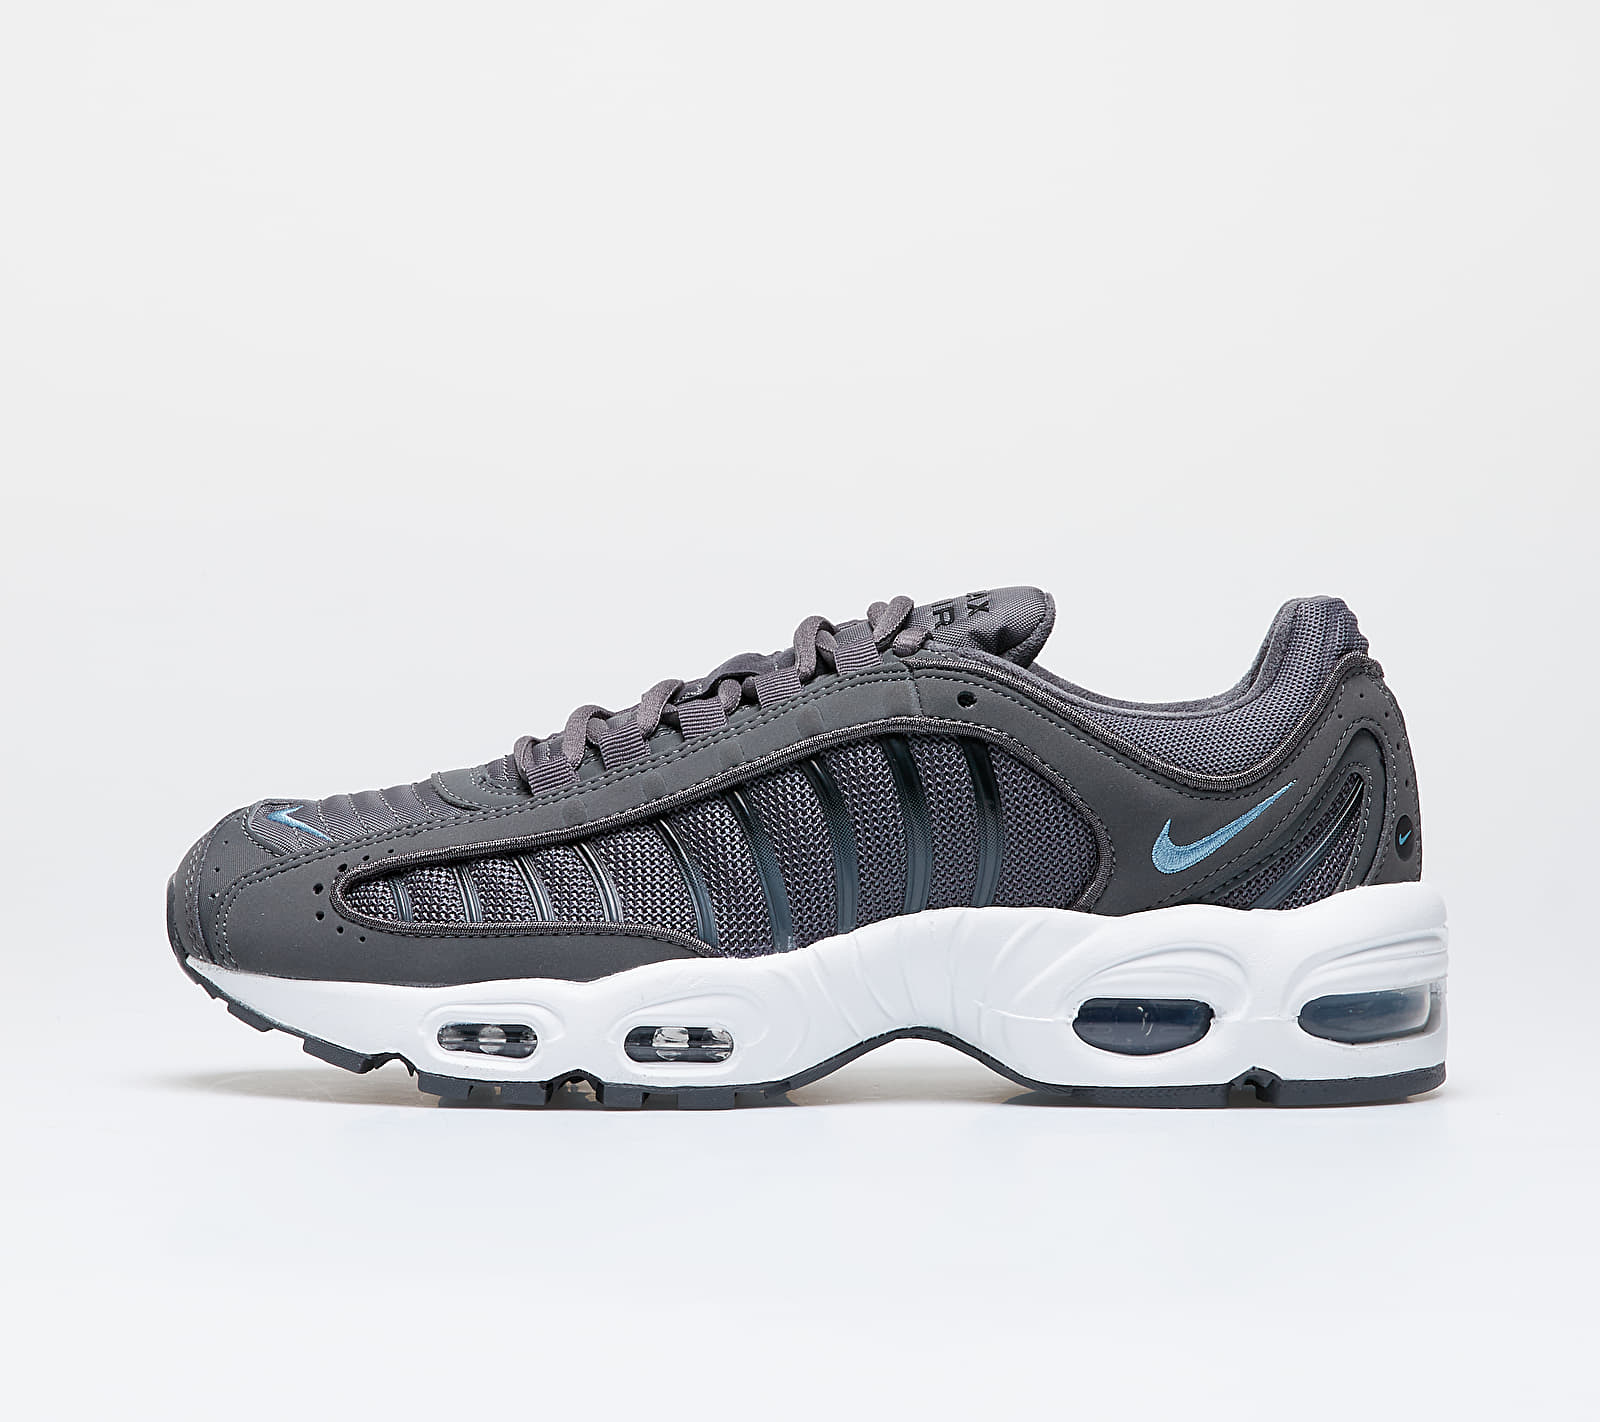 Nike Air Max Tailwind IV Iron Grey/ Cerulean-Black-White EUR 41